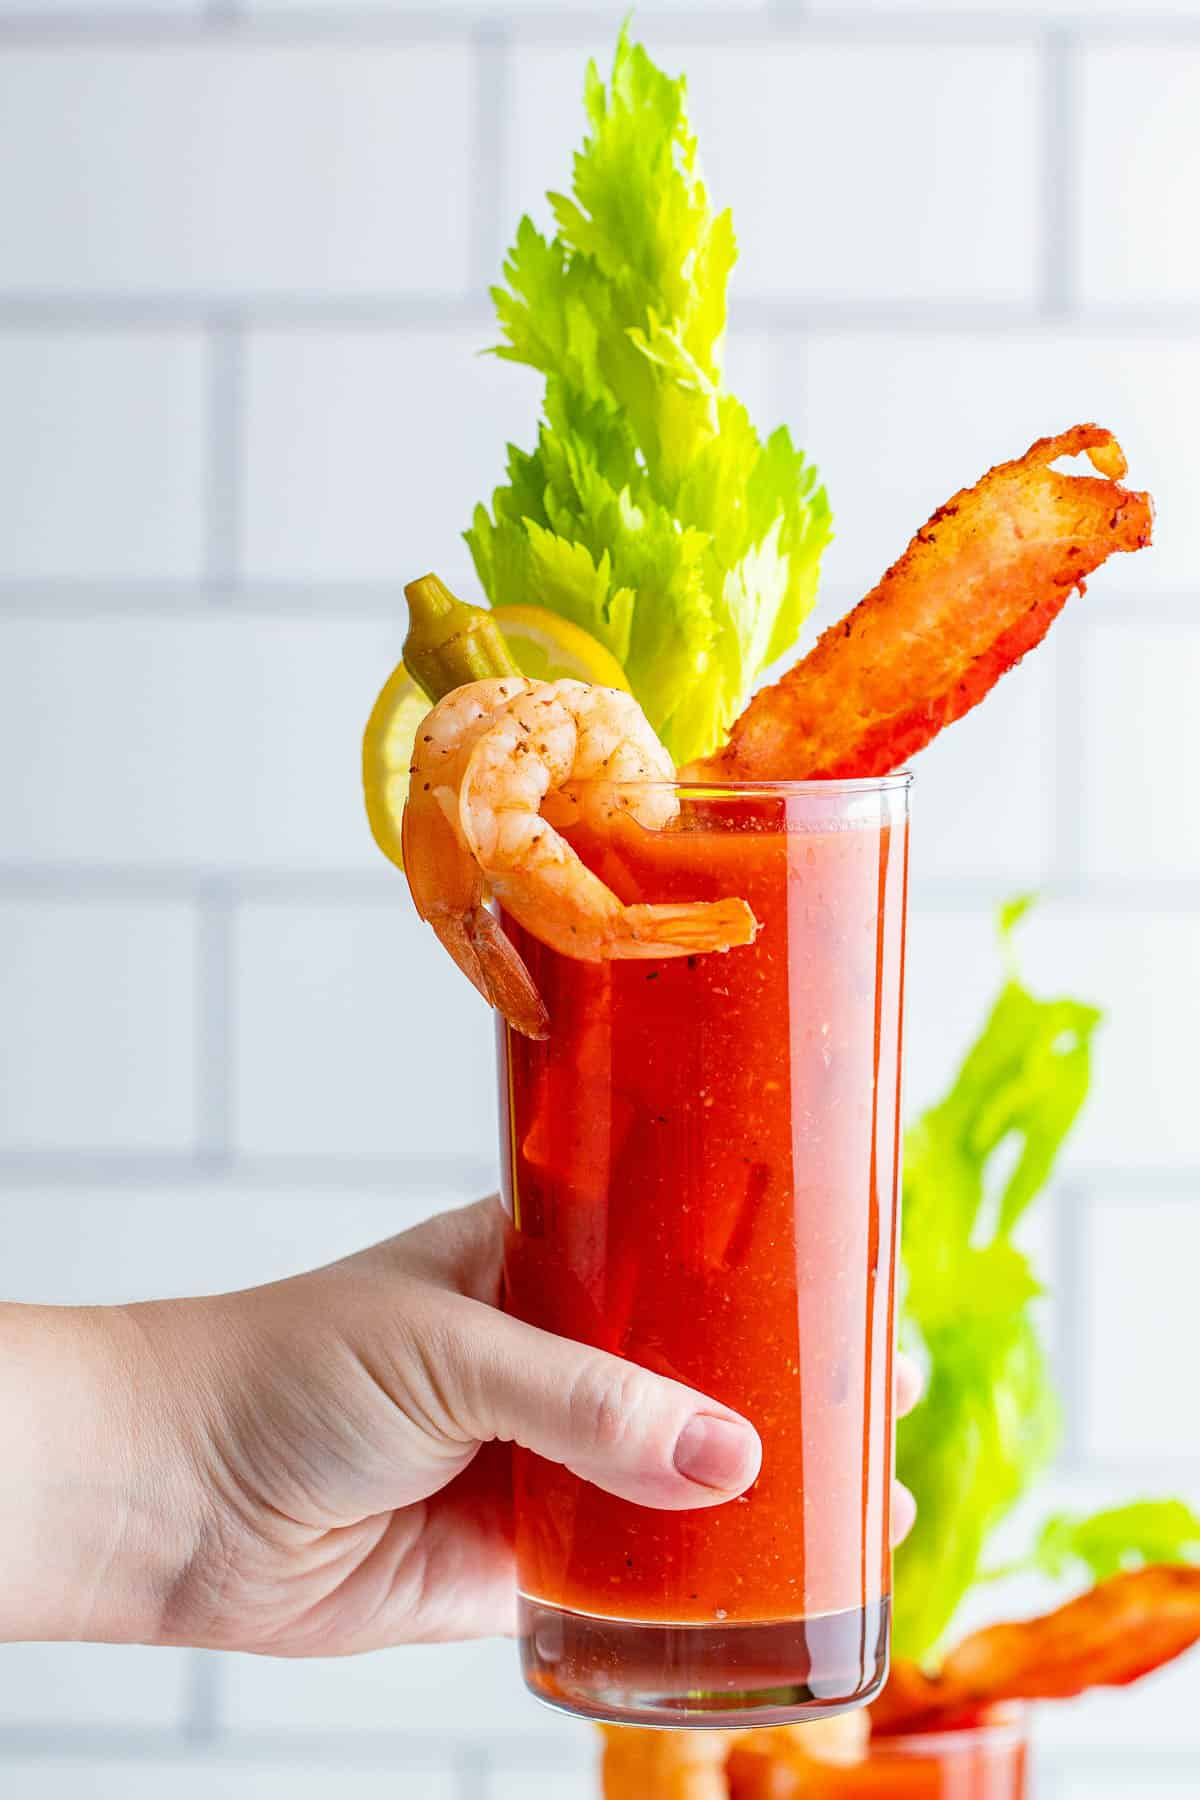 Bloody mary with shrimp, bacon, and celery in a female's hand.